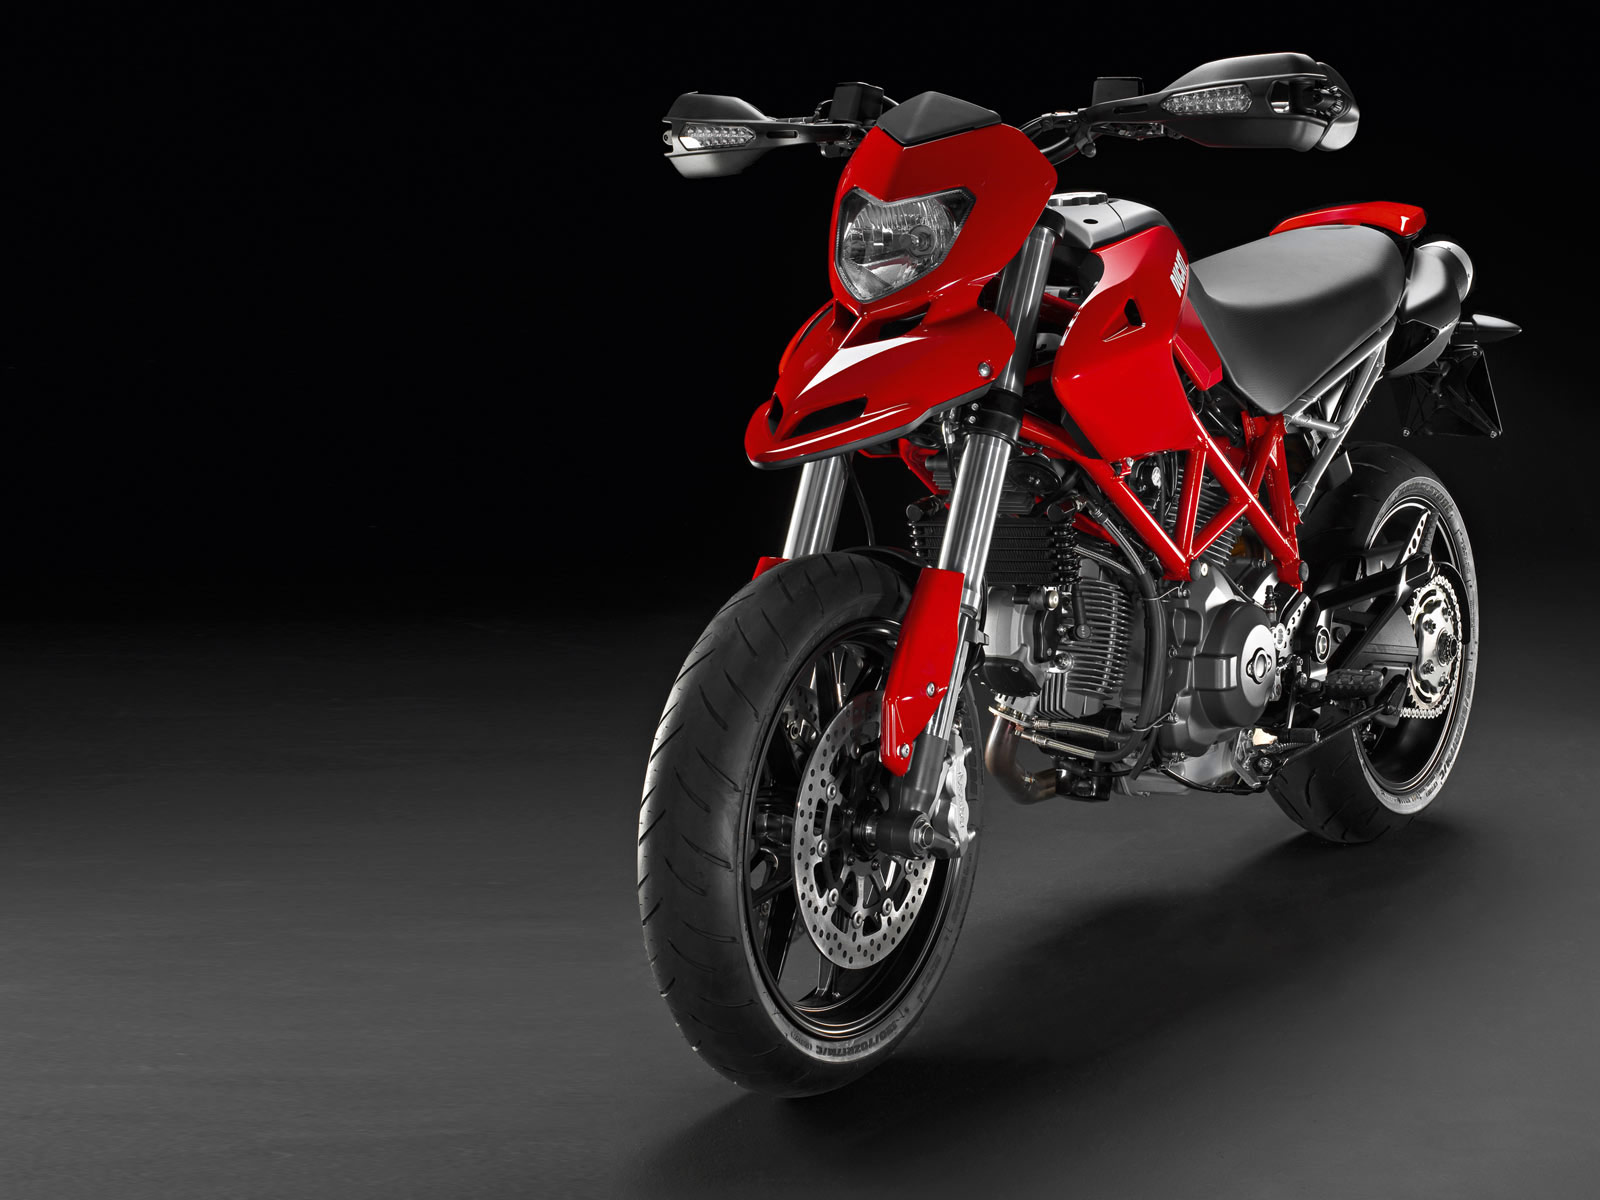 Ducati Hypermotard 796 2011 images #79579